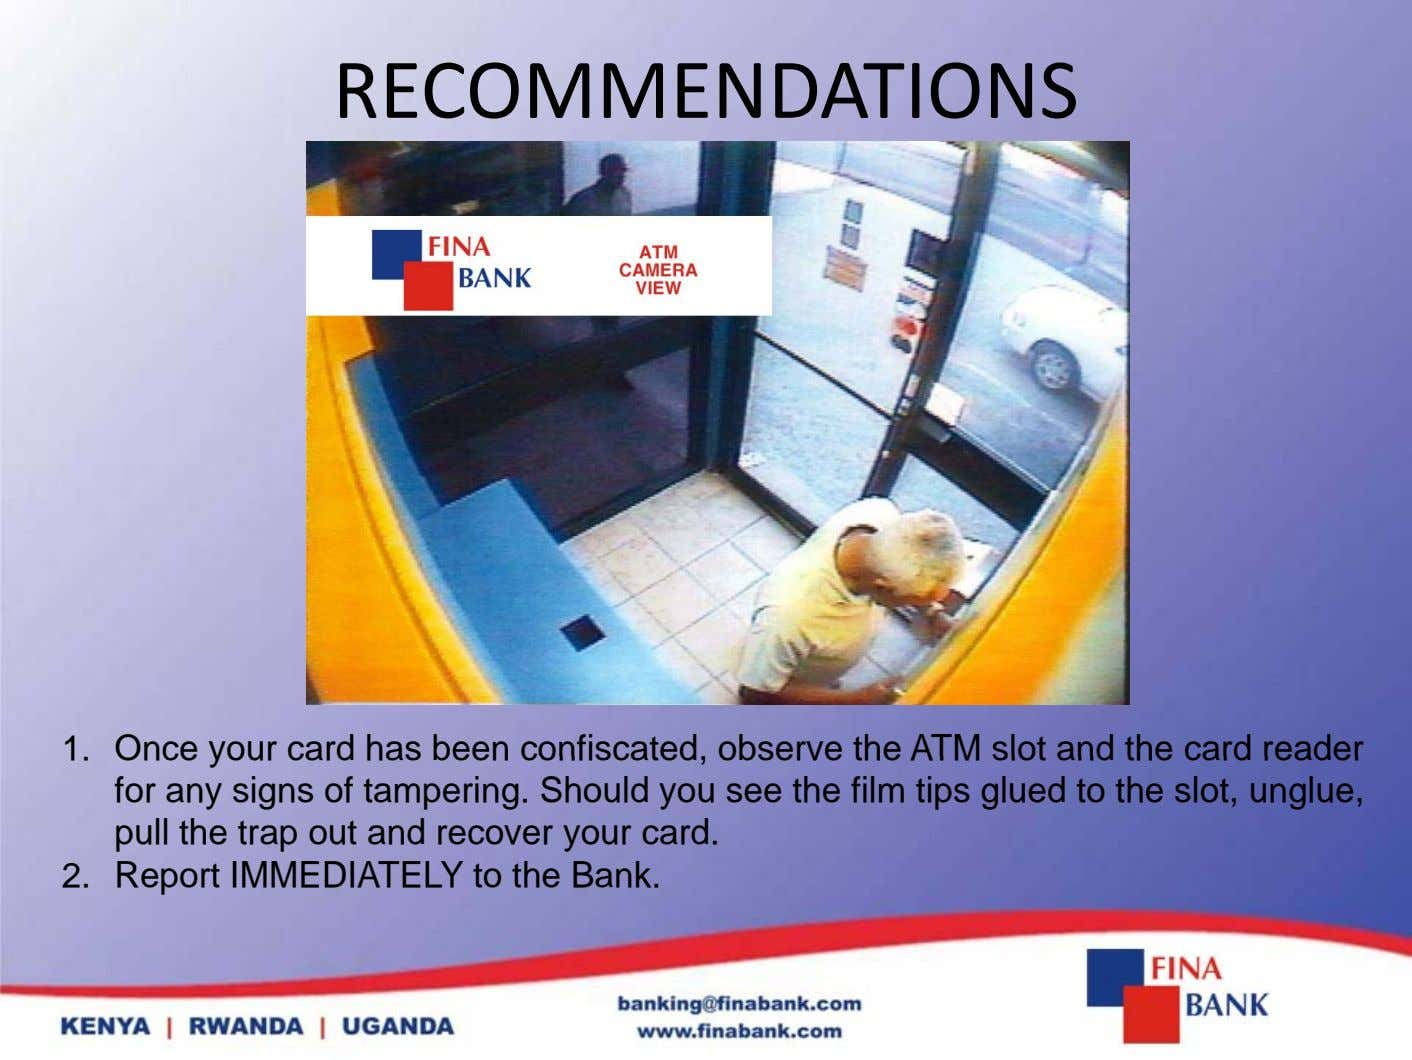 RECOMMENDATIONS 1. Once your card has been confiscated, observe the ATM slot and the card